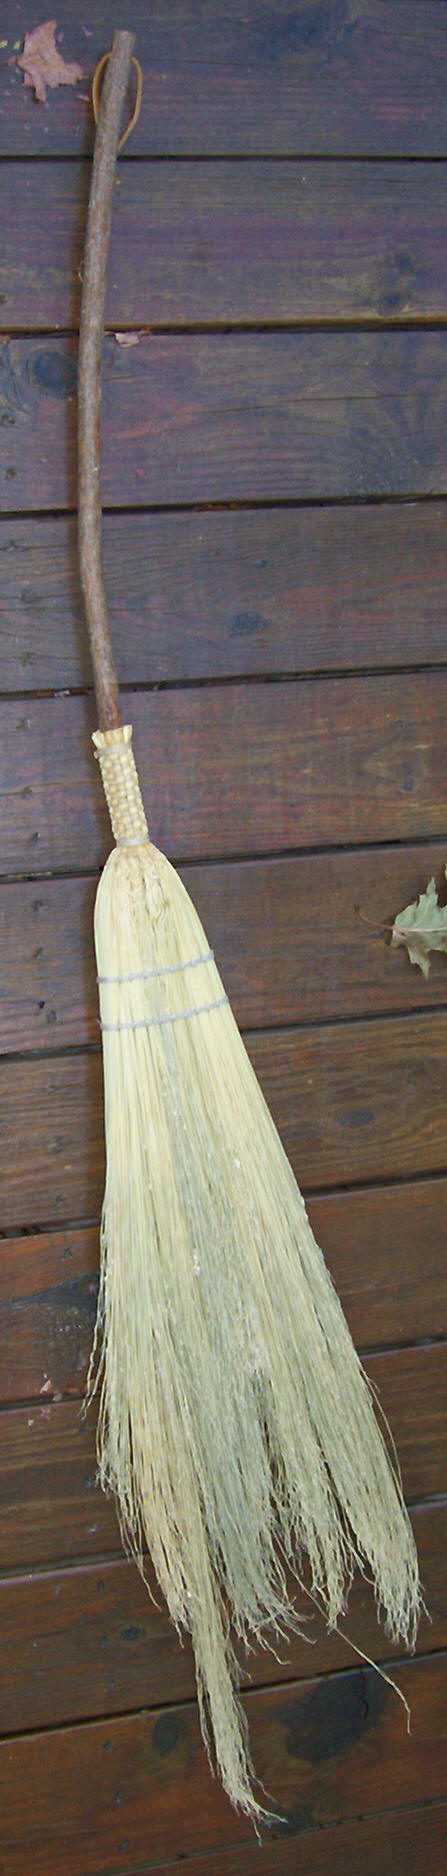 �SJB Minsitries LLC, Modern Artistian Broom made with the past in mind, Jumping the Broom, Slave marriages, slave wedding brooms, slave wedding history